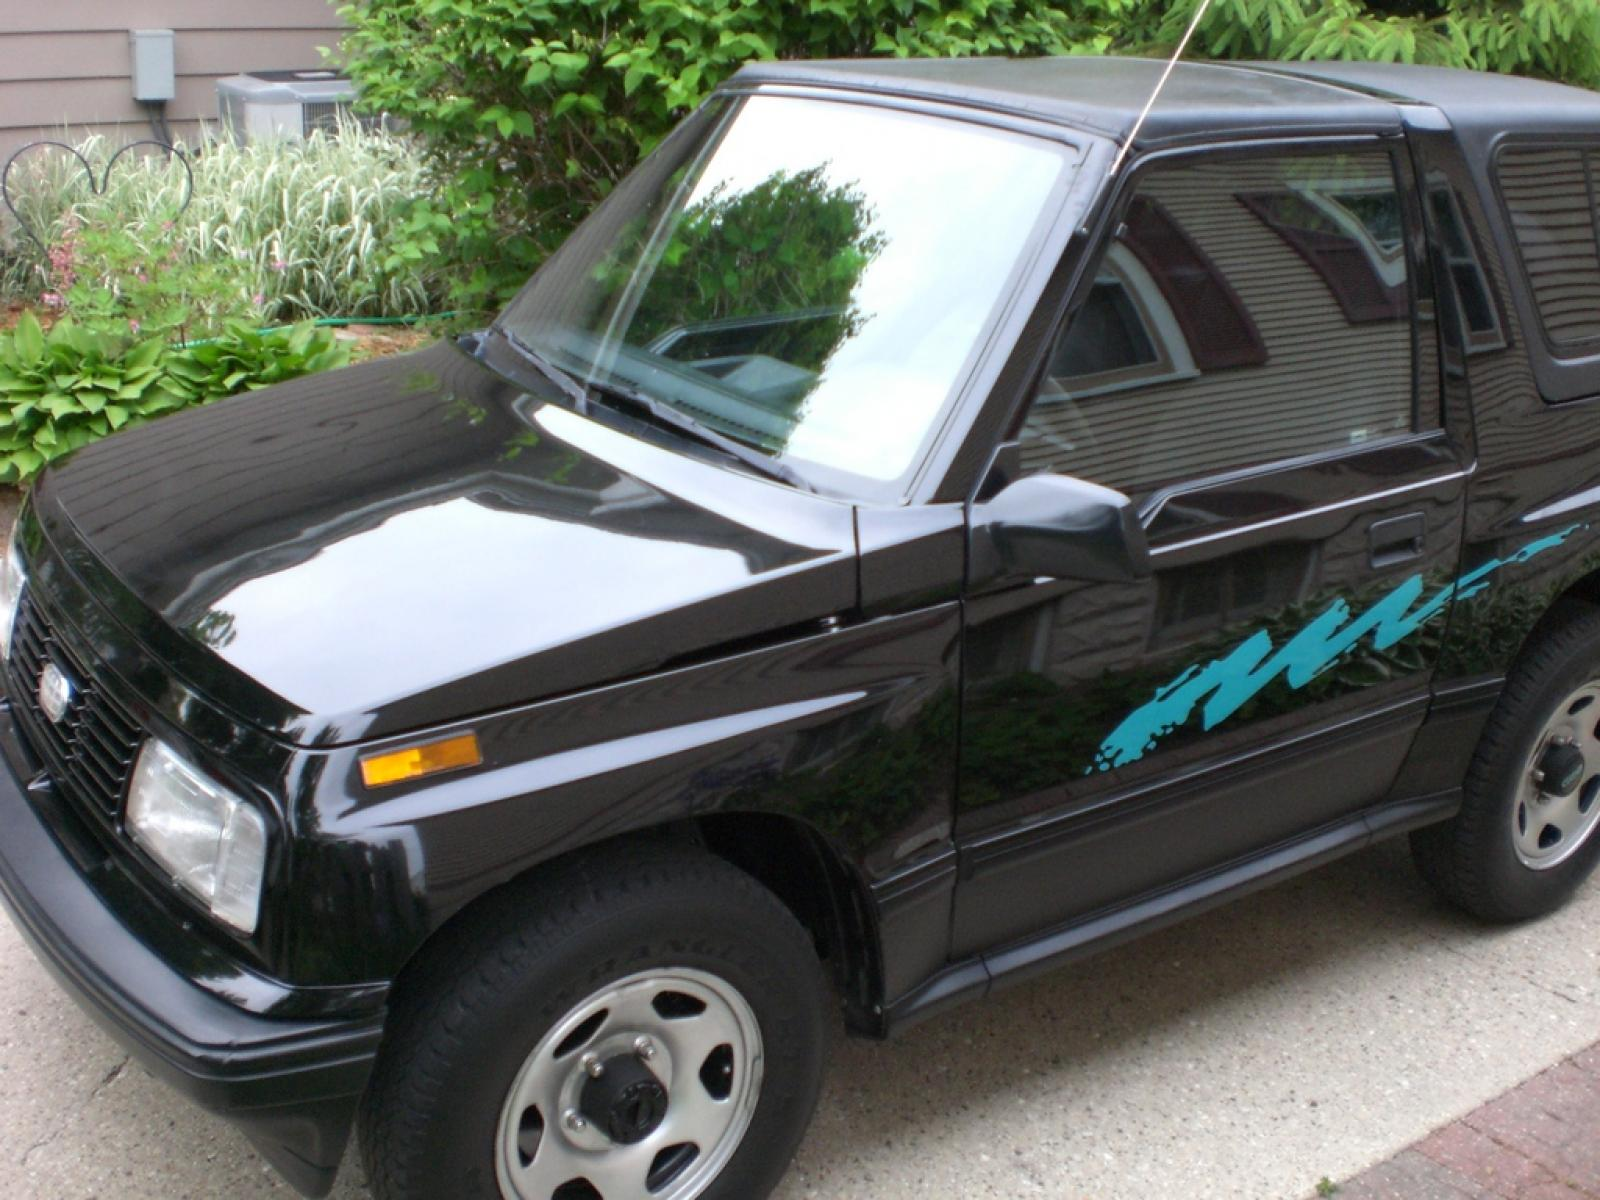 hight resolution of 800 1024 1280 1600 origin 1995 geo tracker